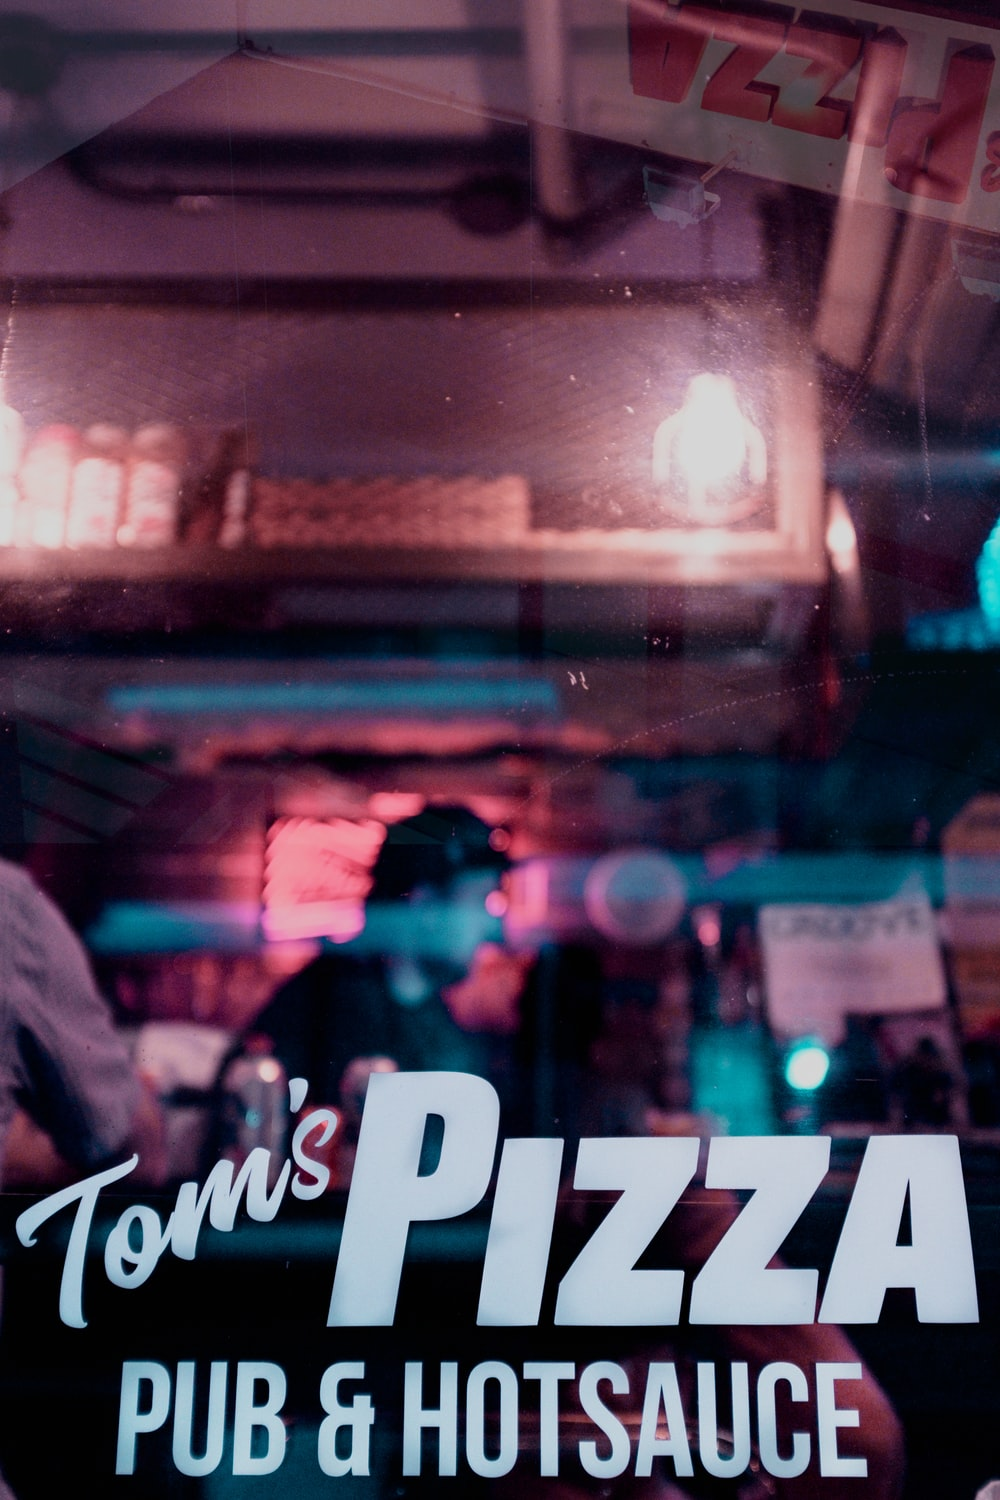 people with Tom's Pizza text